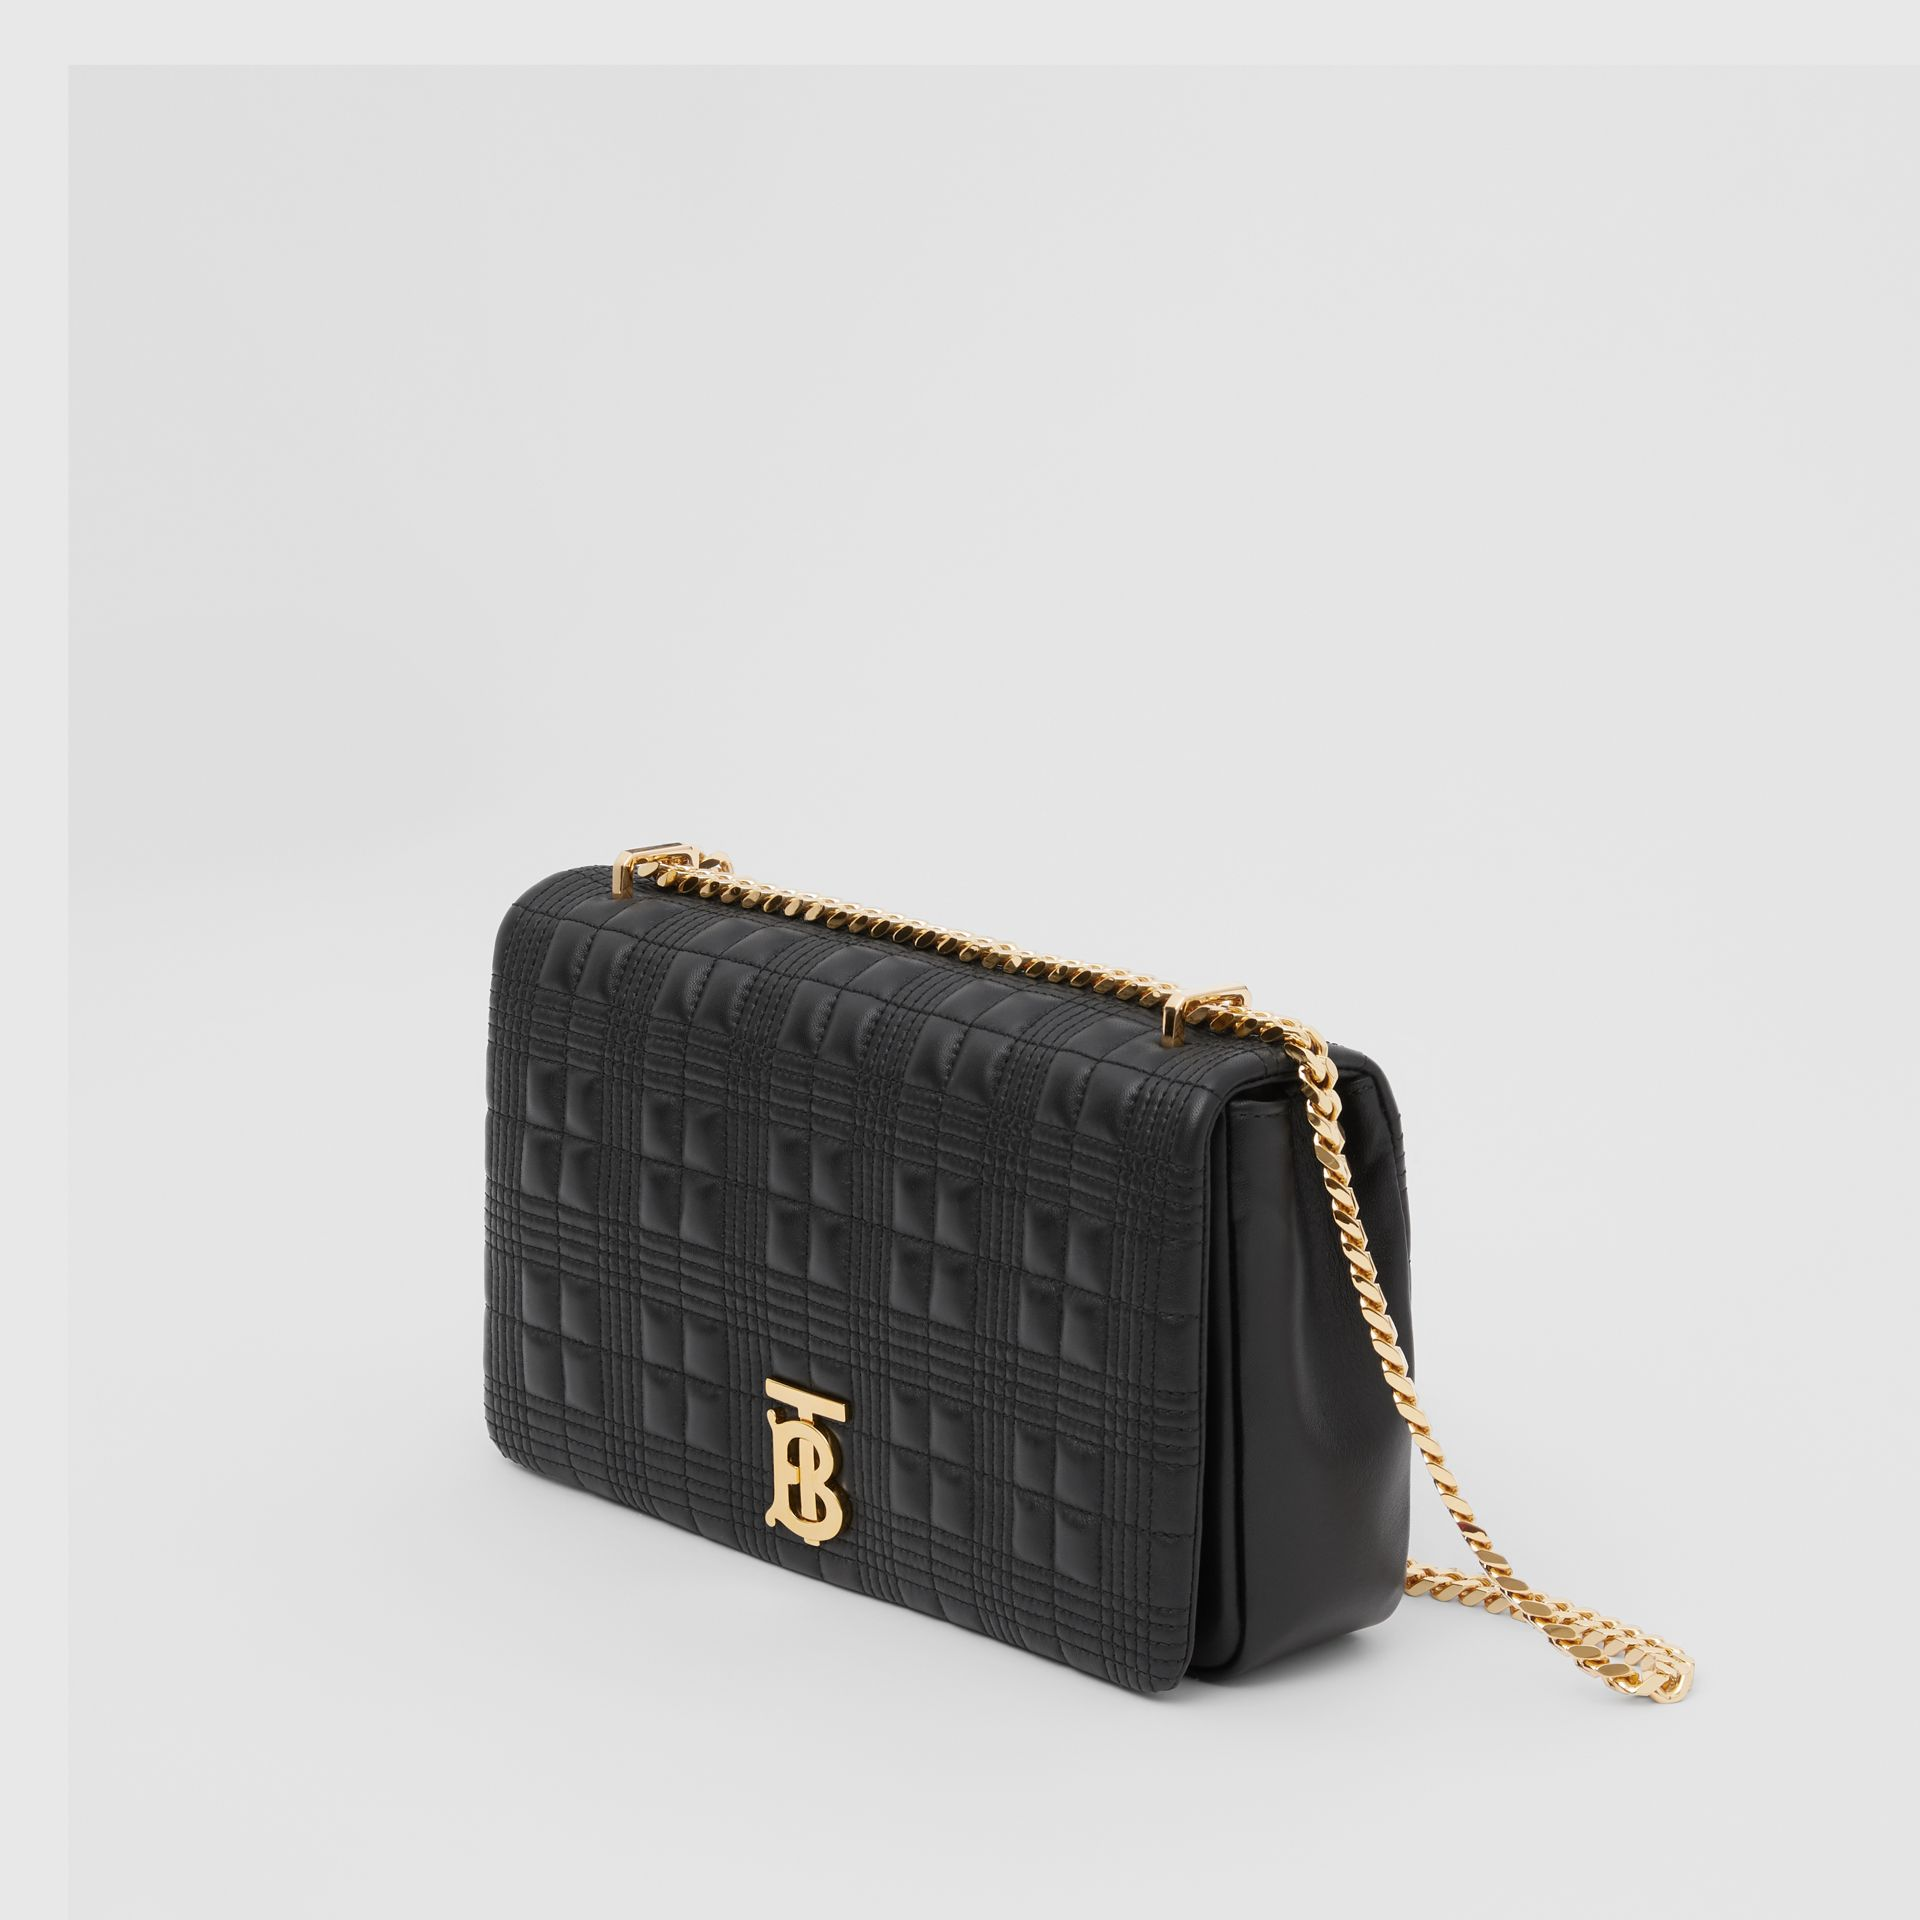 Medium Quilted Check Lambskin Lola Bag in Black - Women | Burberry - gallery image 2